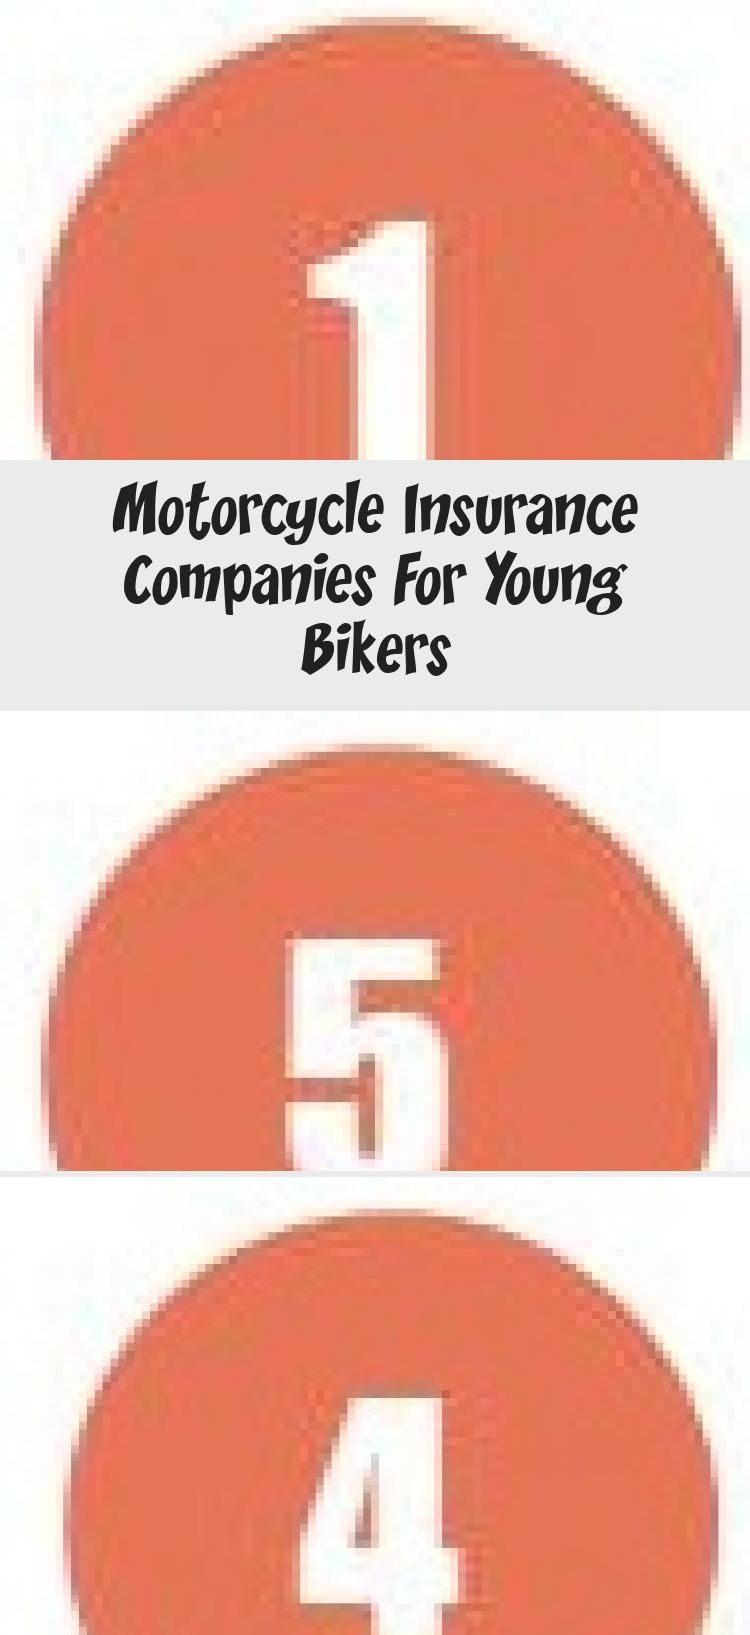 Motorcycle Insurance Companies For Young Bikers In 2020